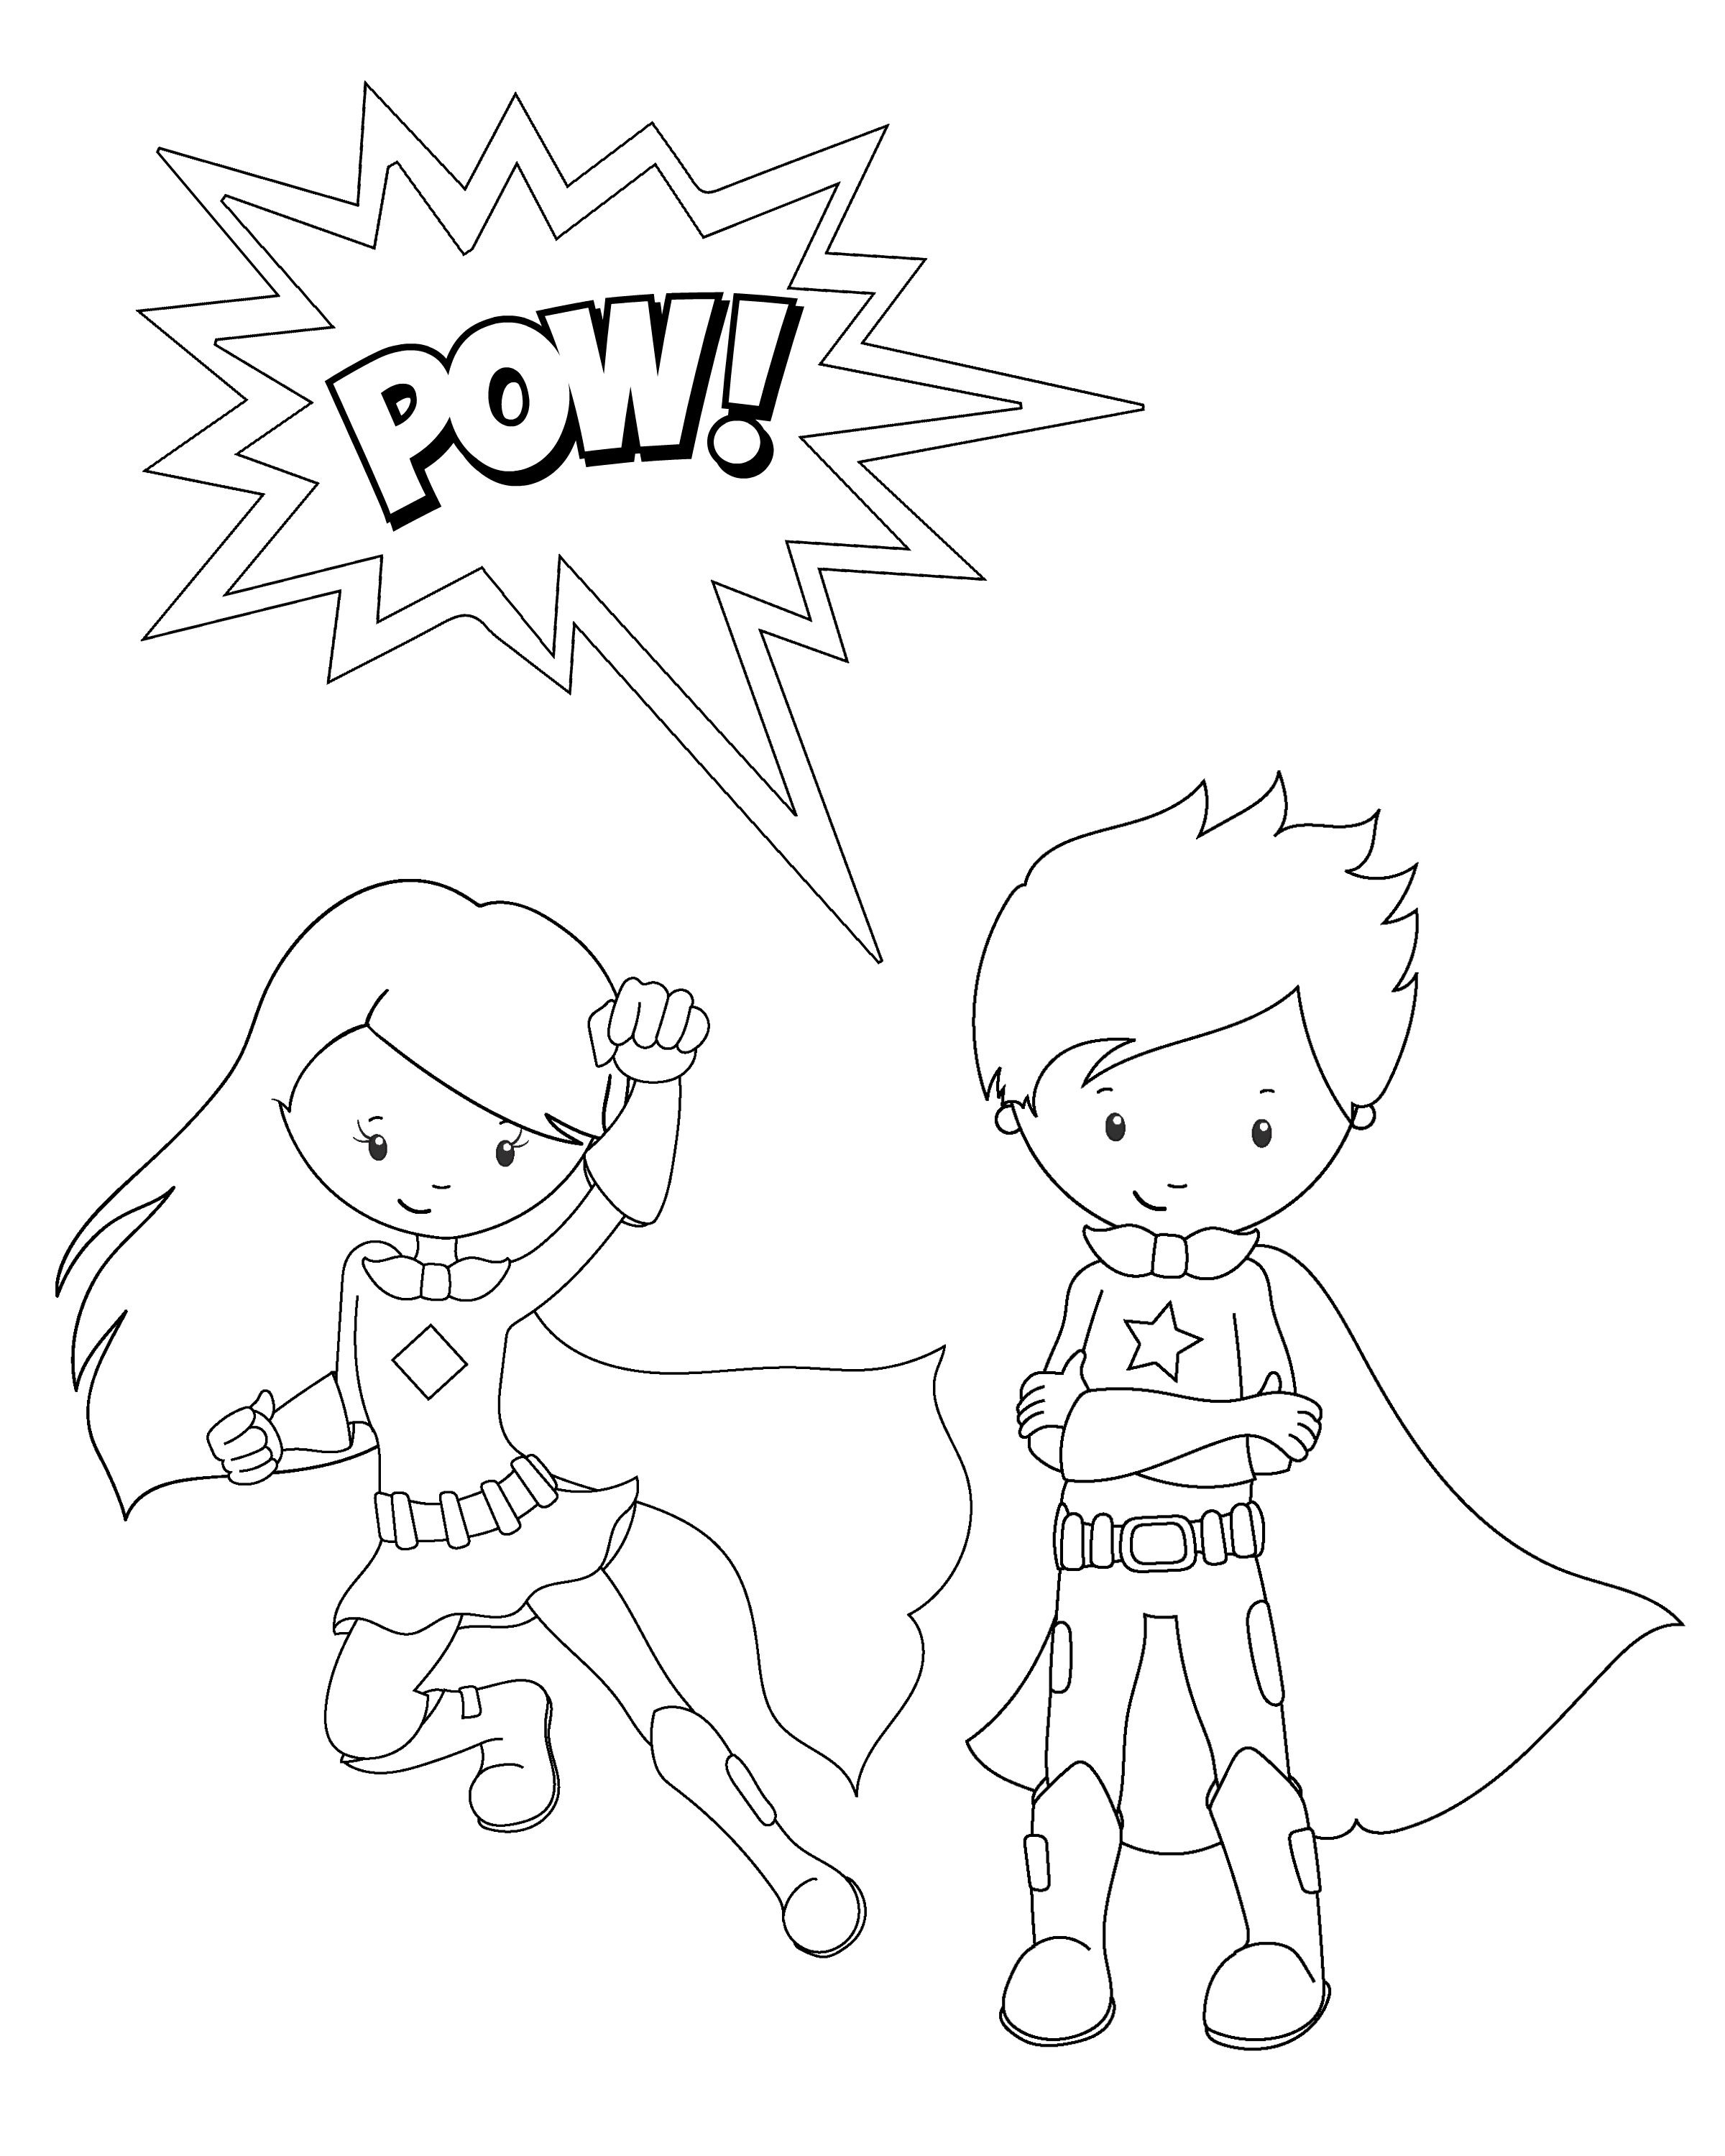 Free Printable Superhero Coloring Sheets For Kids   Summer Camp - Free Printable Superhero Coloring Pages